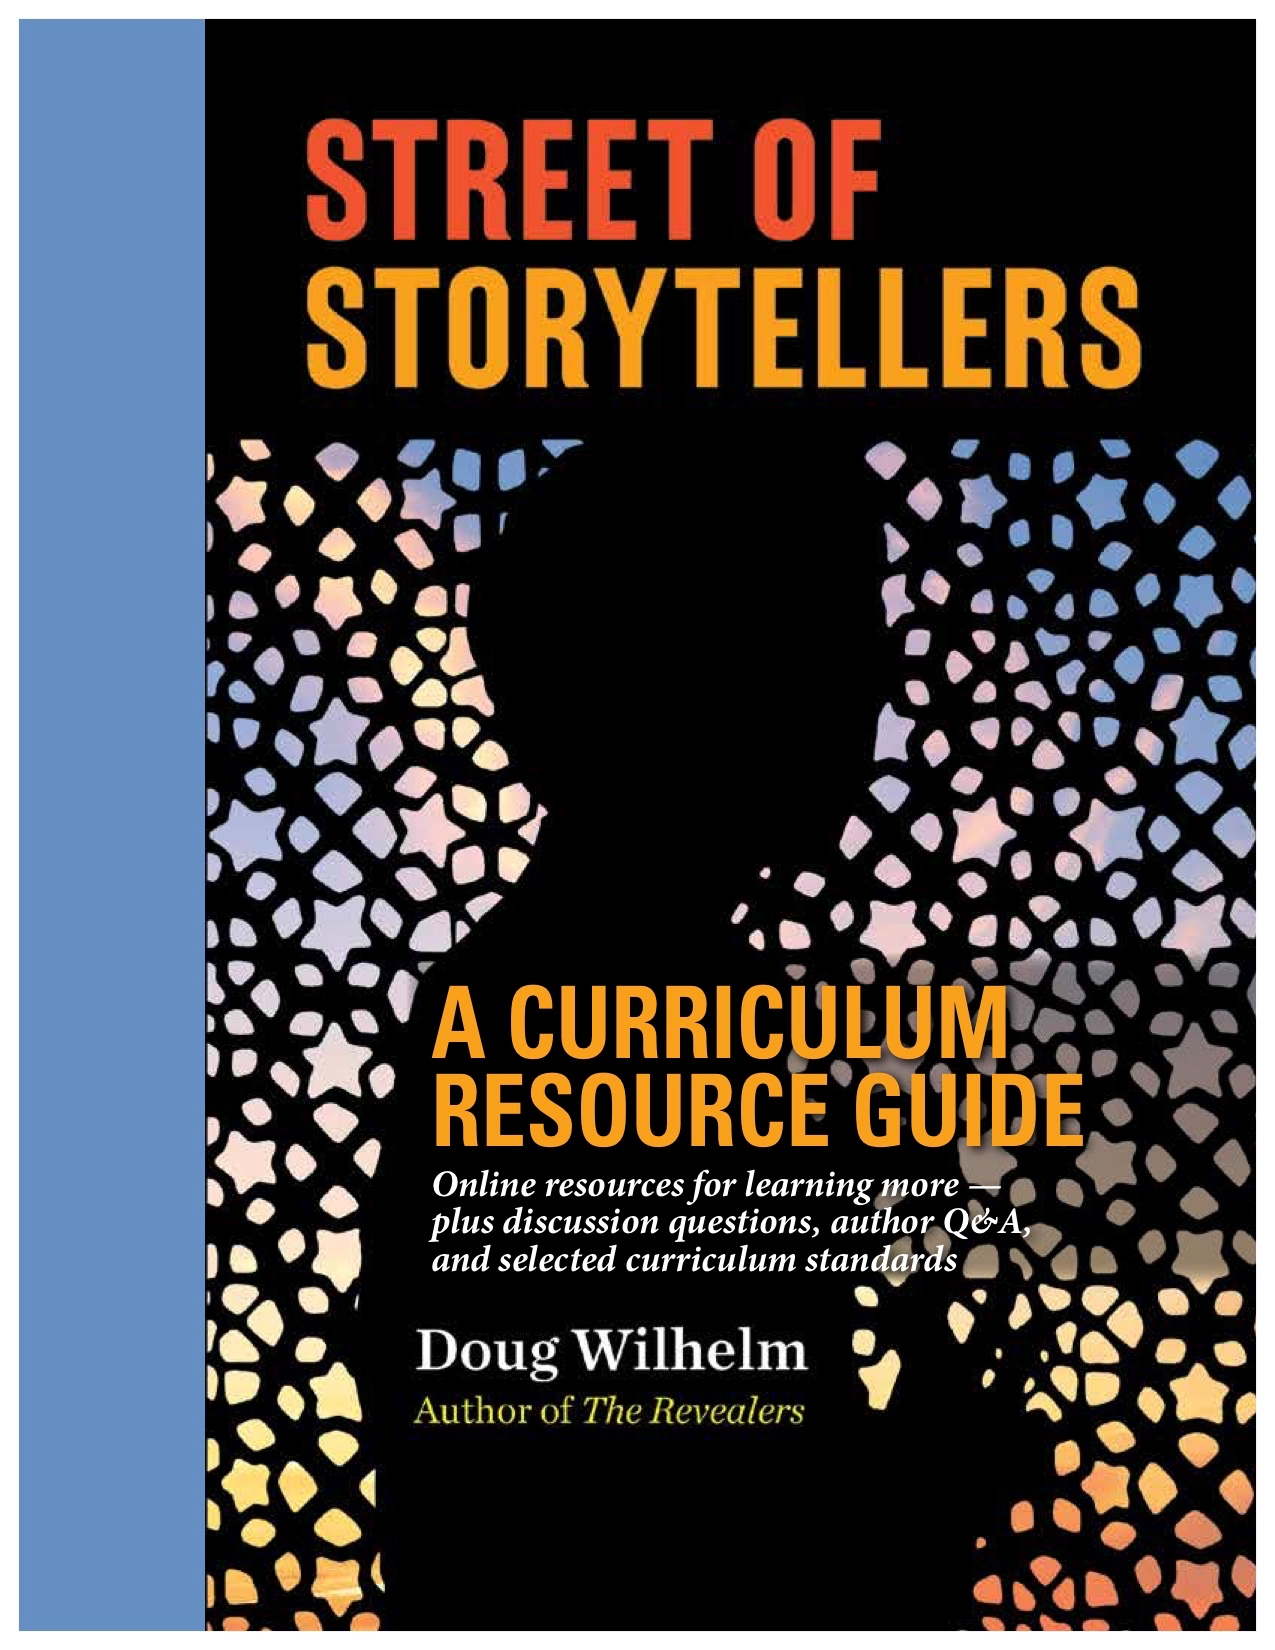 Storytellers guide cover